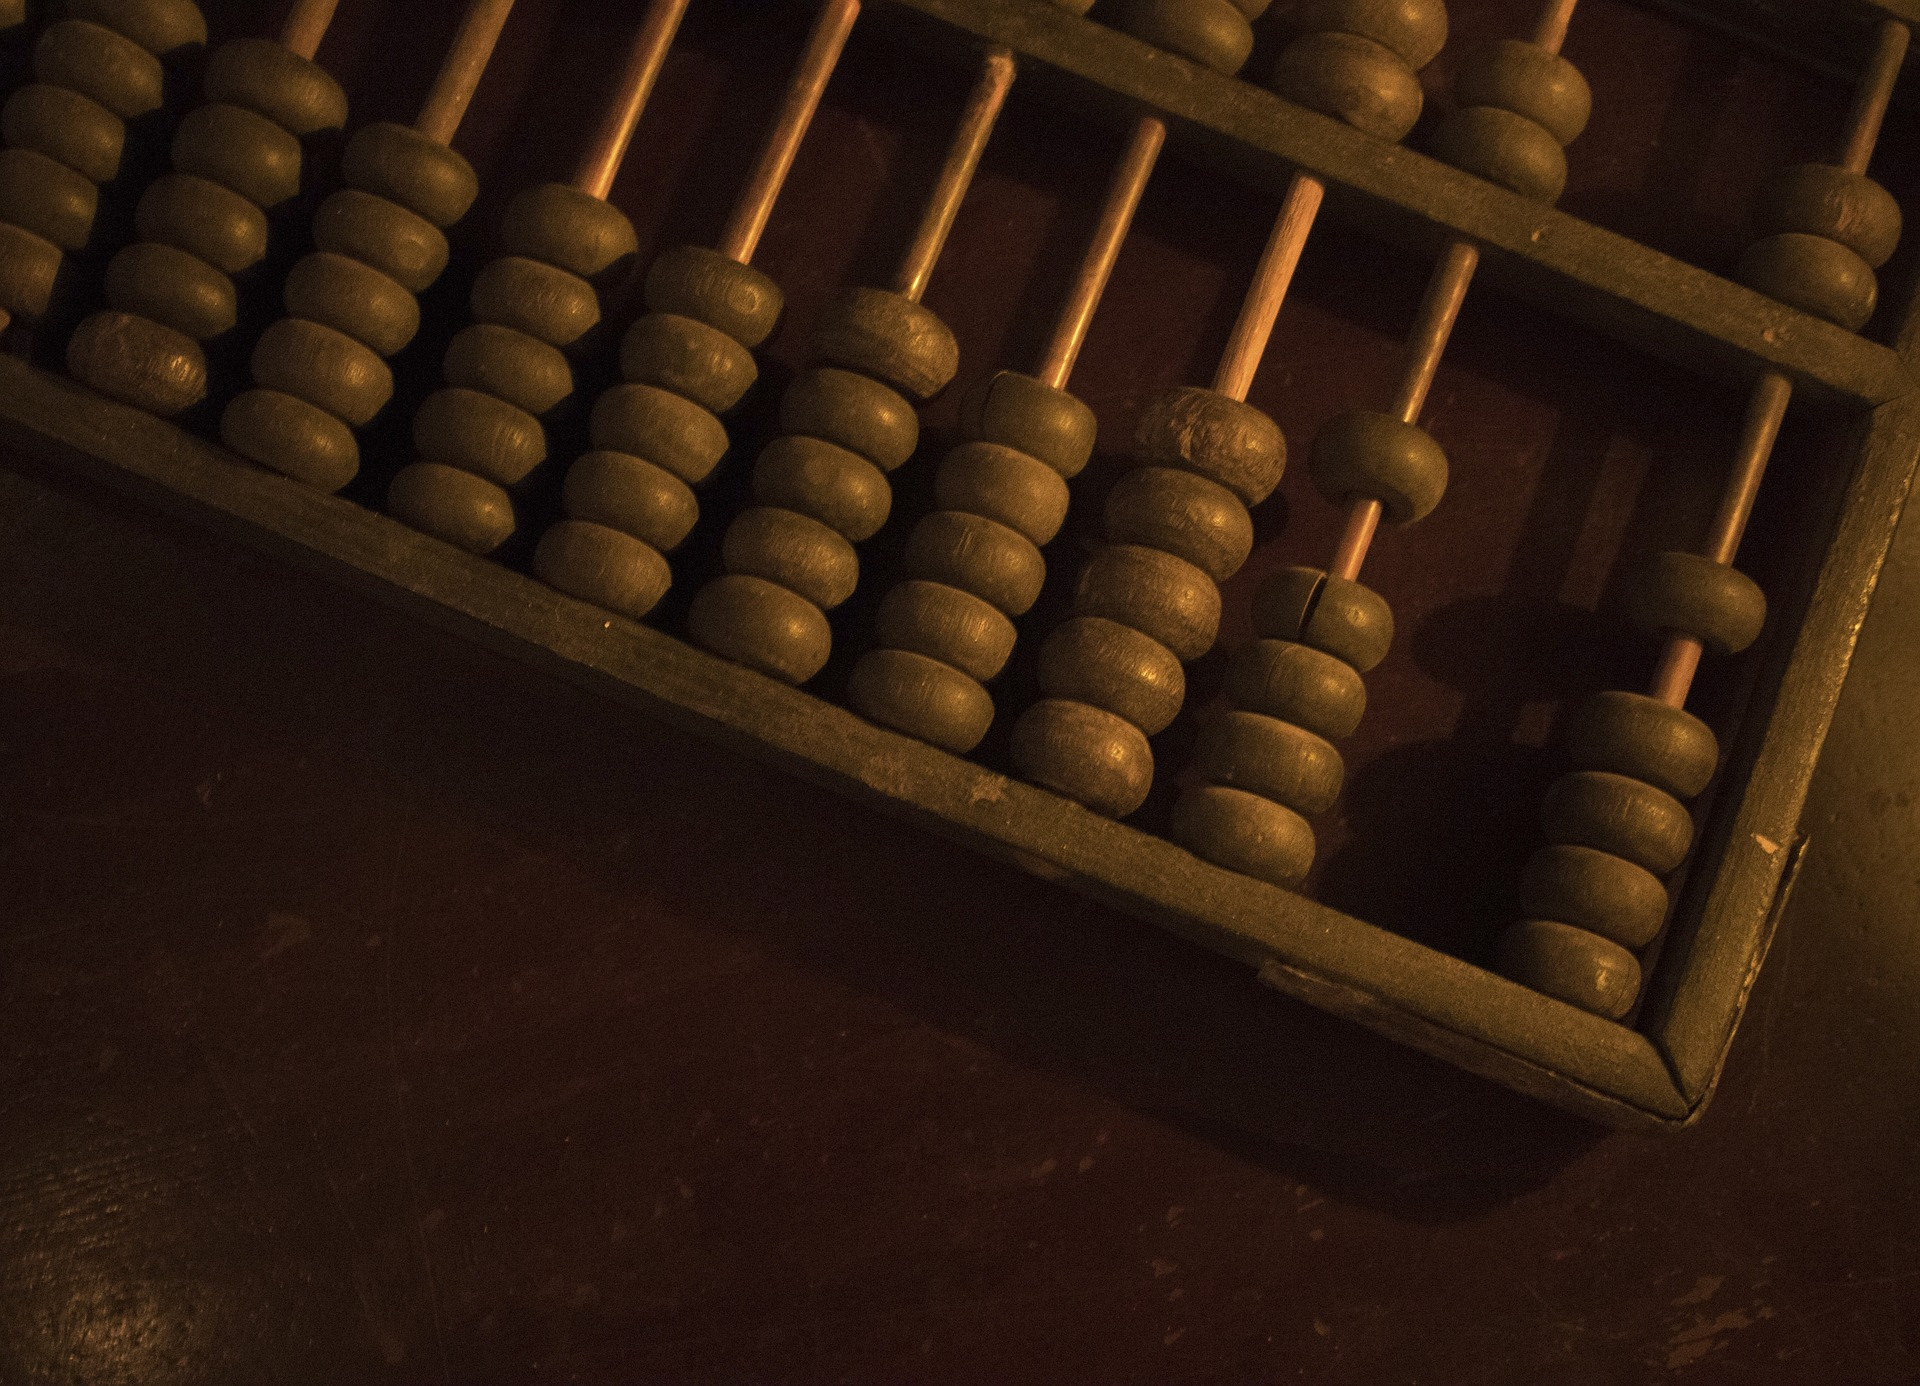 abacus-3828820_1920